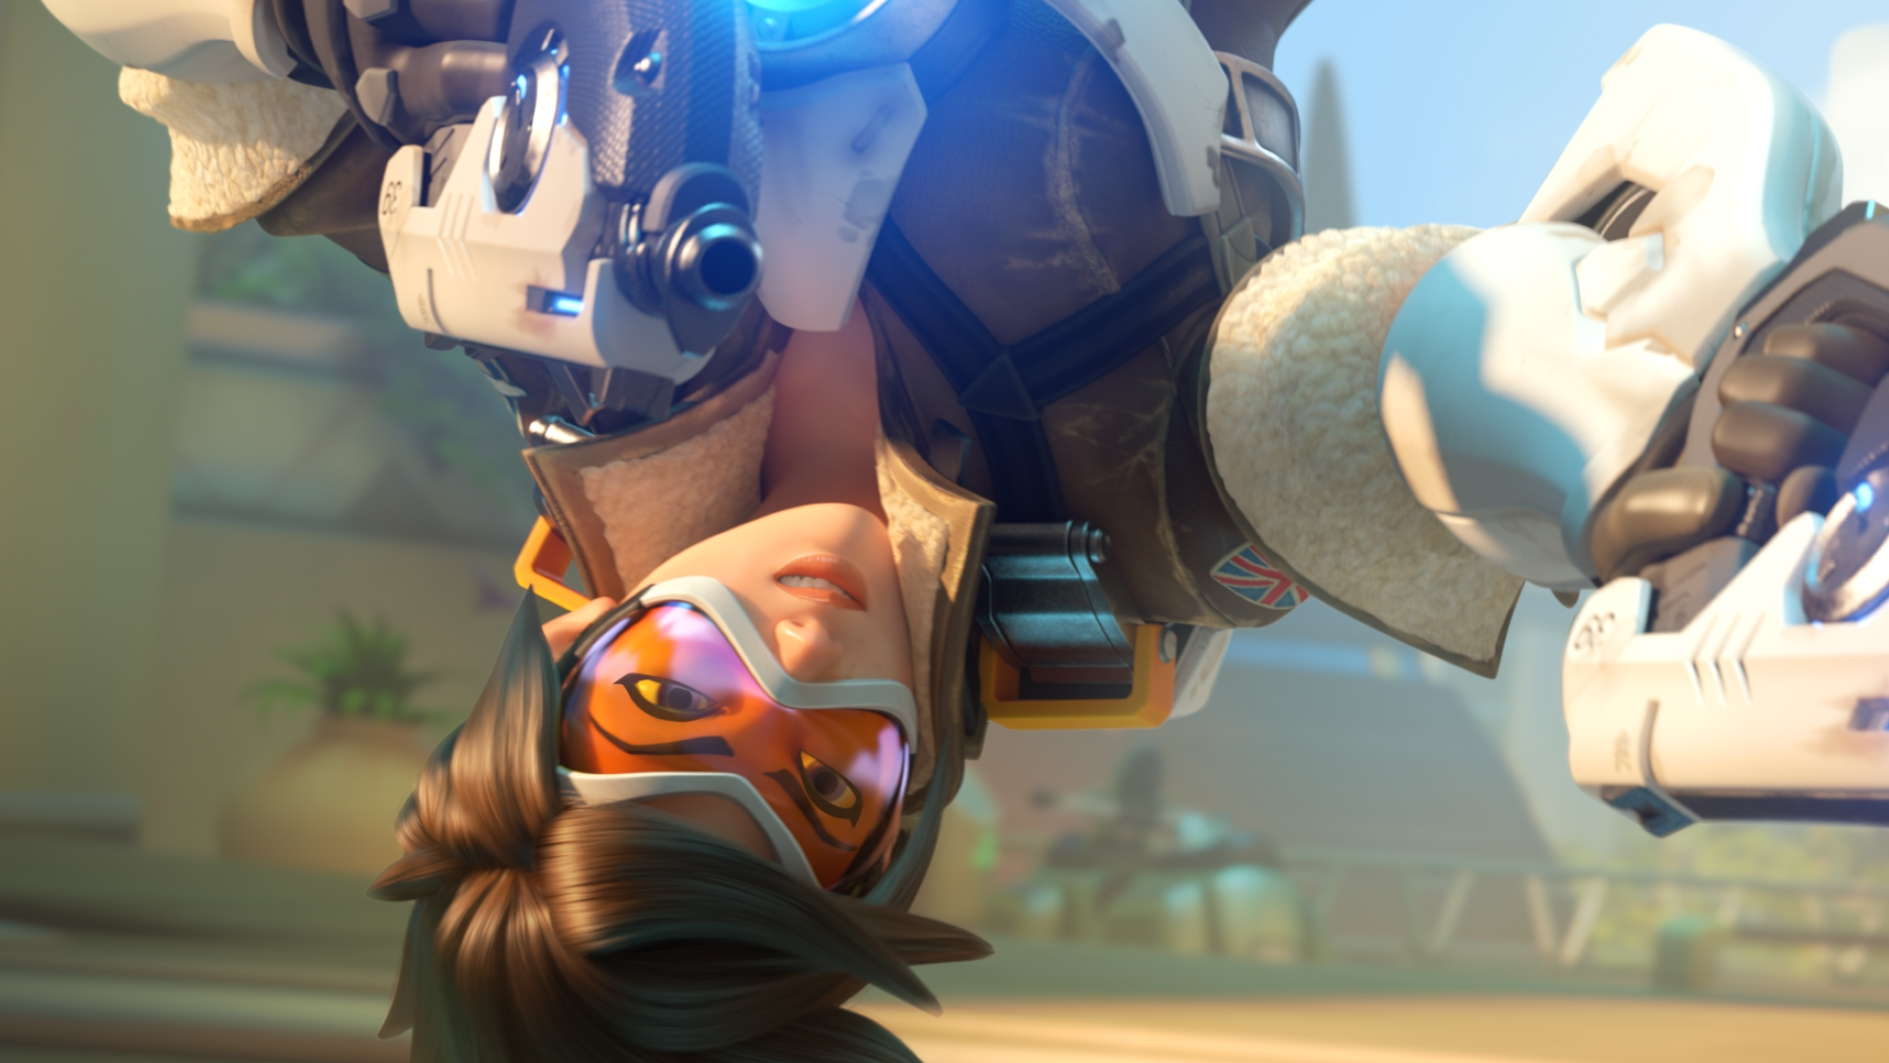 This Overwatch graphics tweak increased our fps by 50